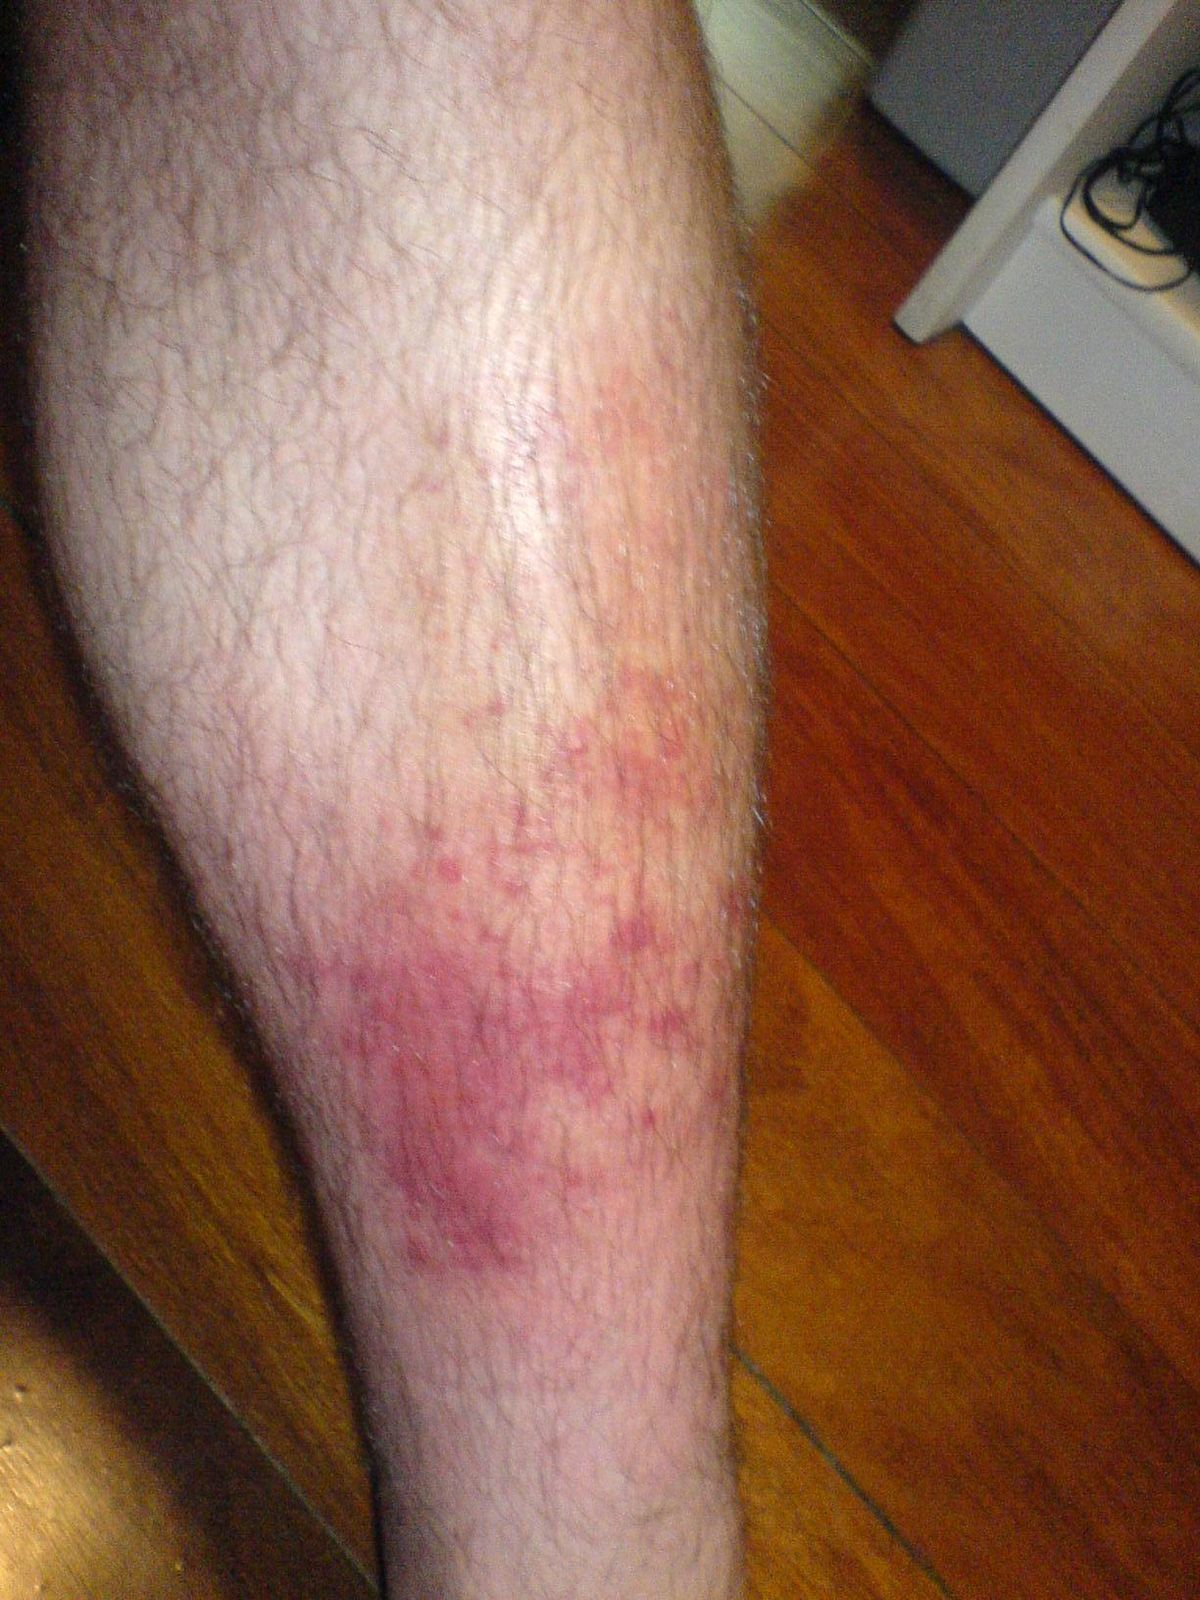 Patch 1 trial cellulitis treatment